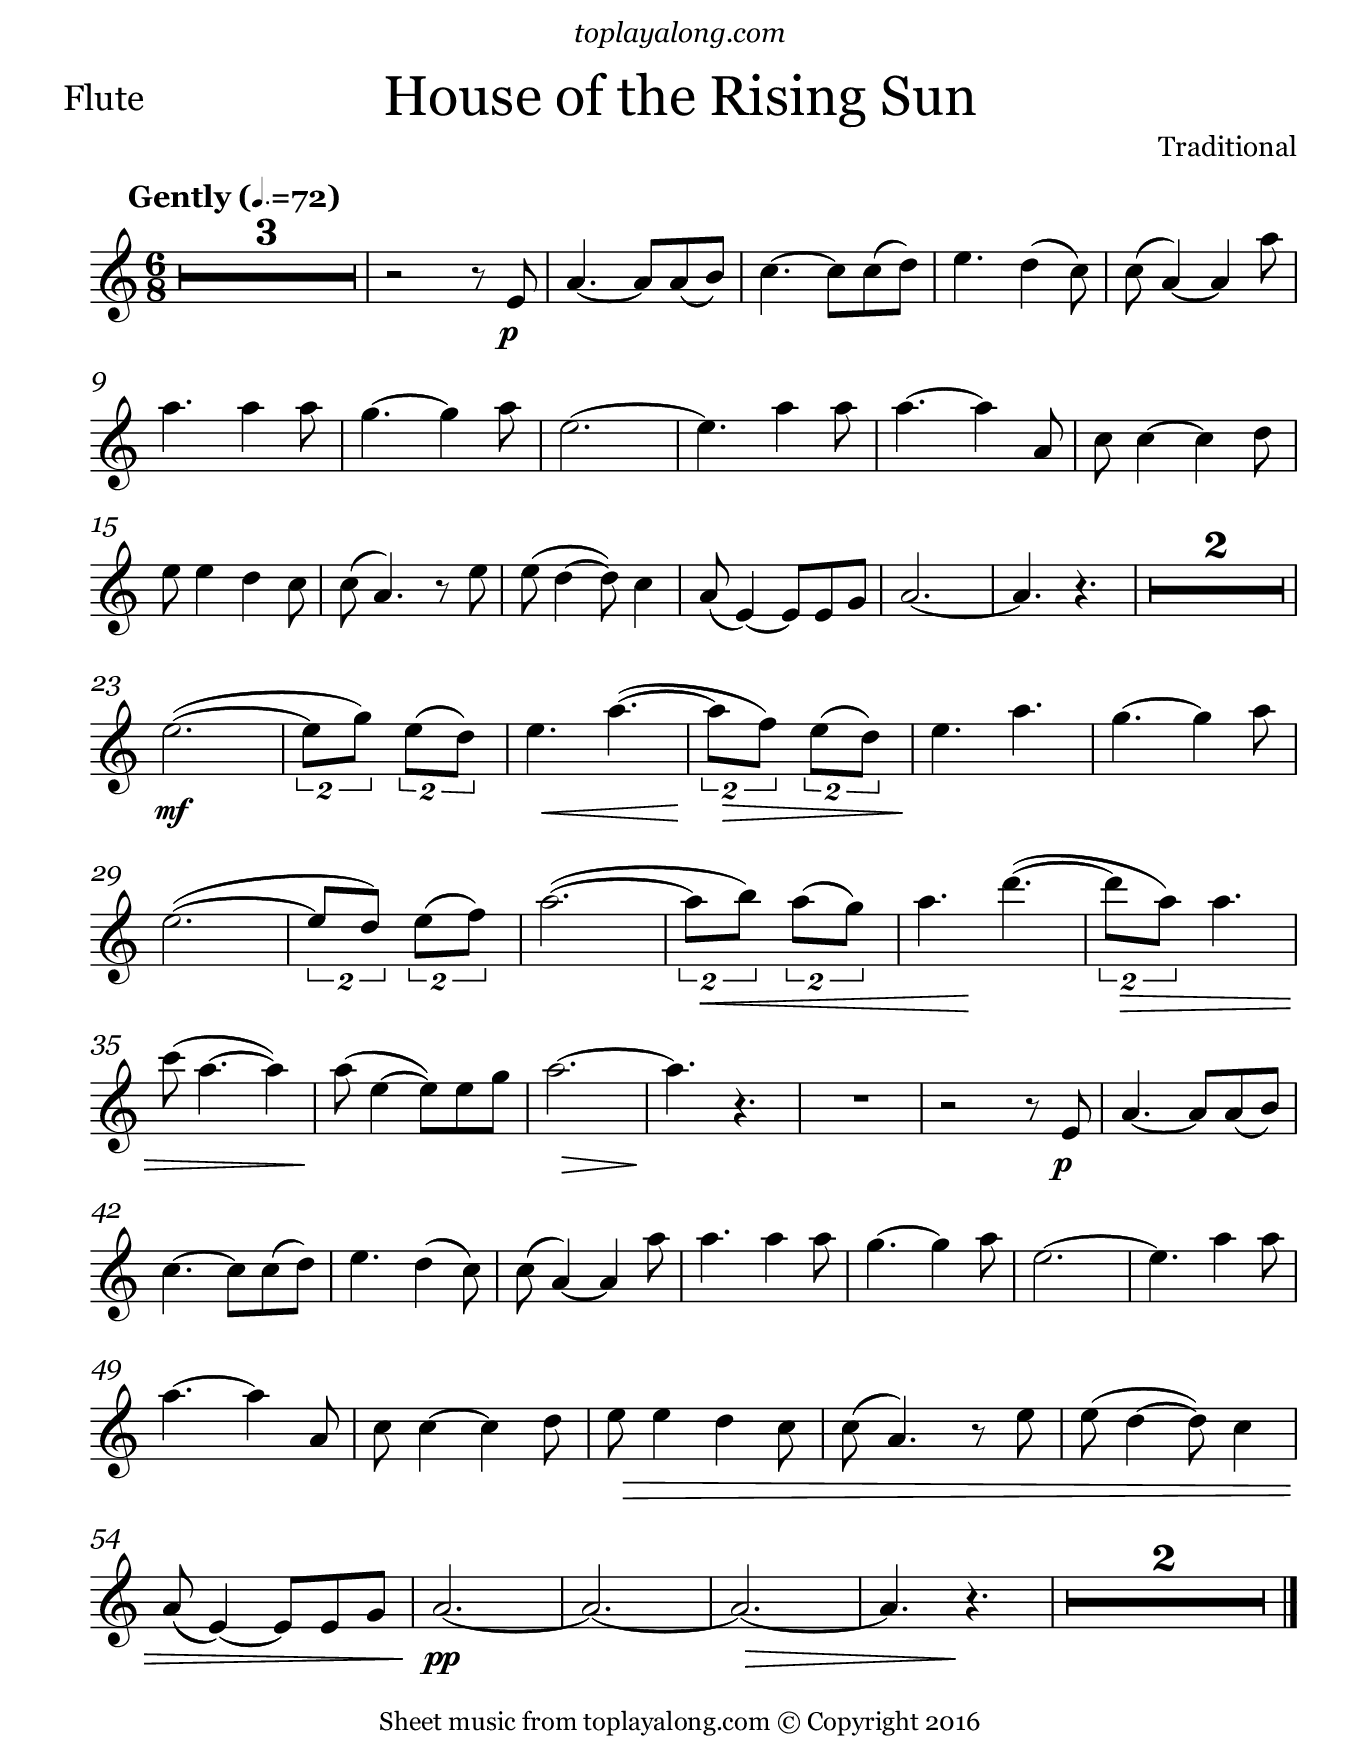 House of the Rising Sun. Sheet music for Flute, page 1.